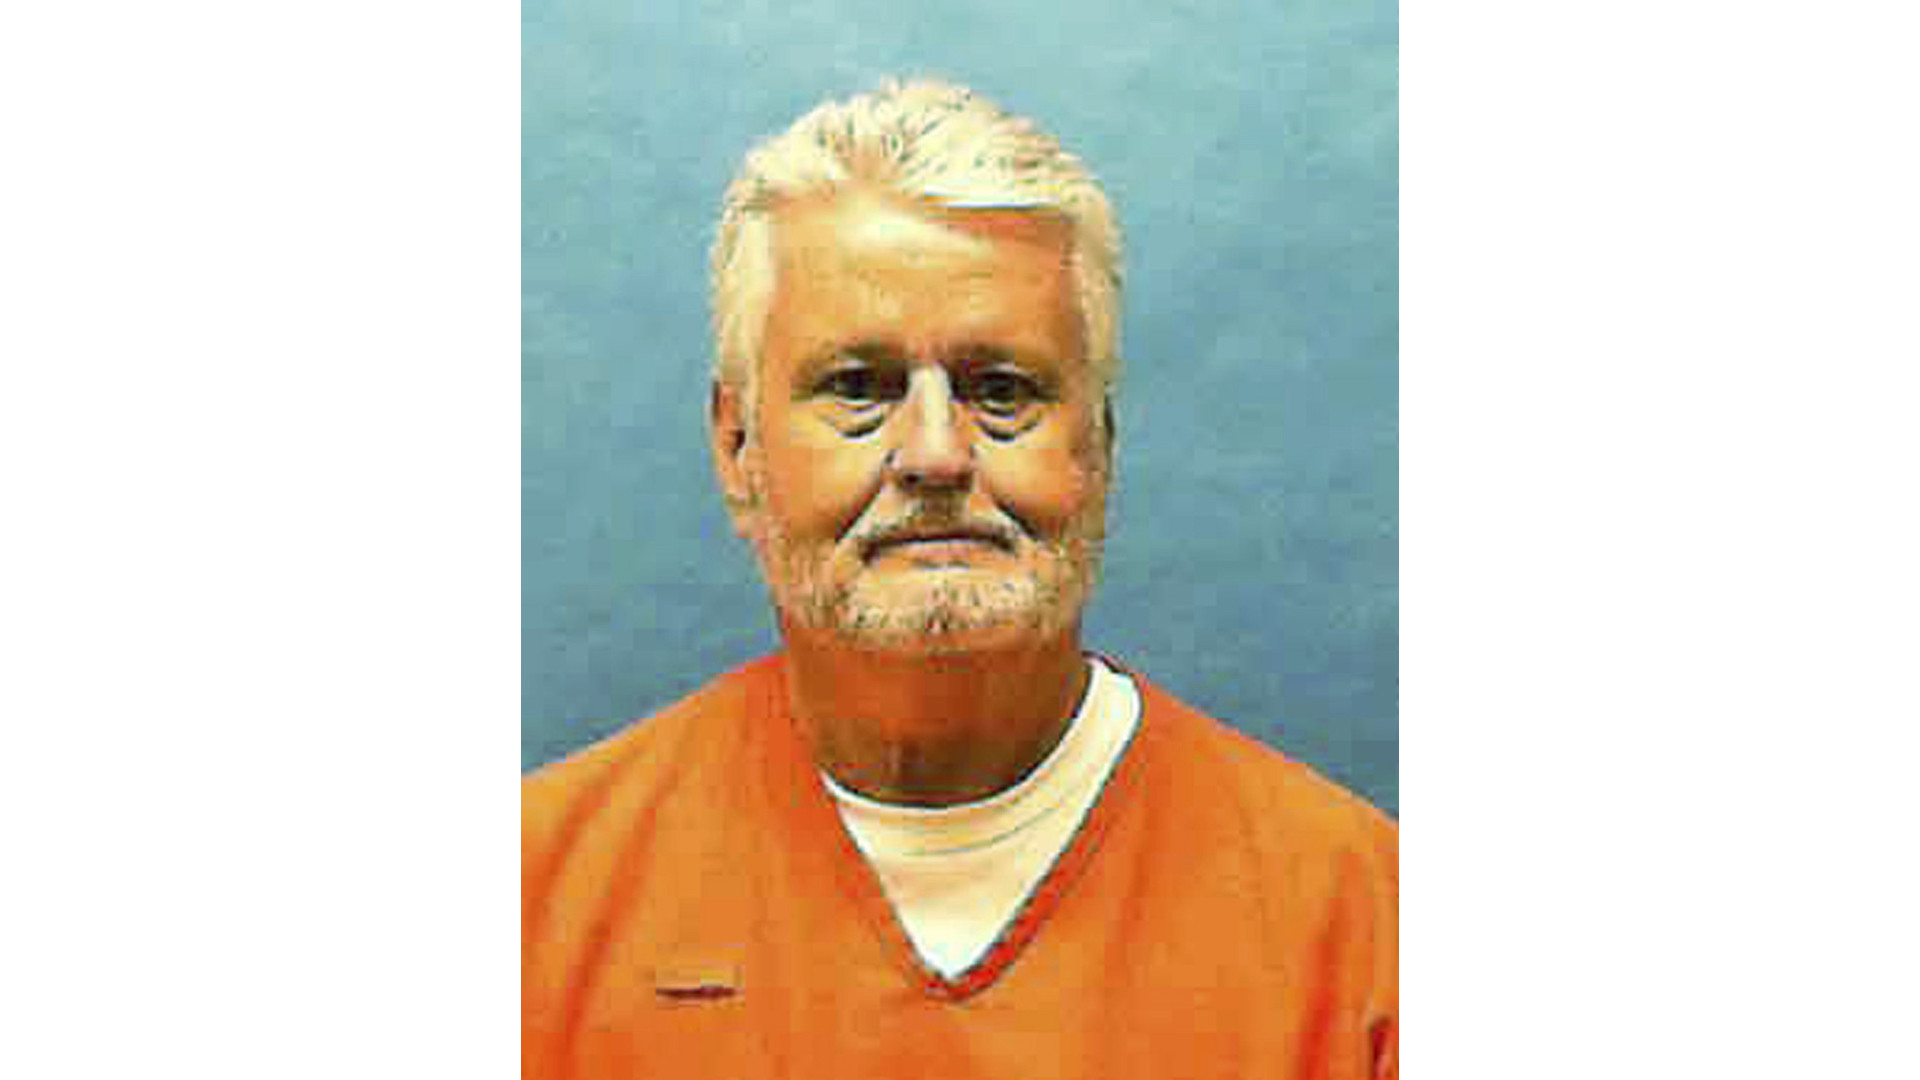 Bobby Joe Long, a serial killer who terrorized Florida in 1984, killing 10 women, is executed